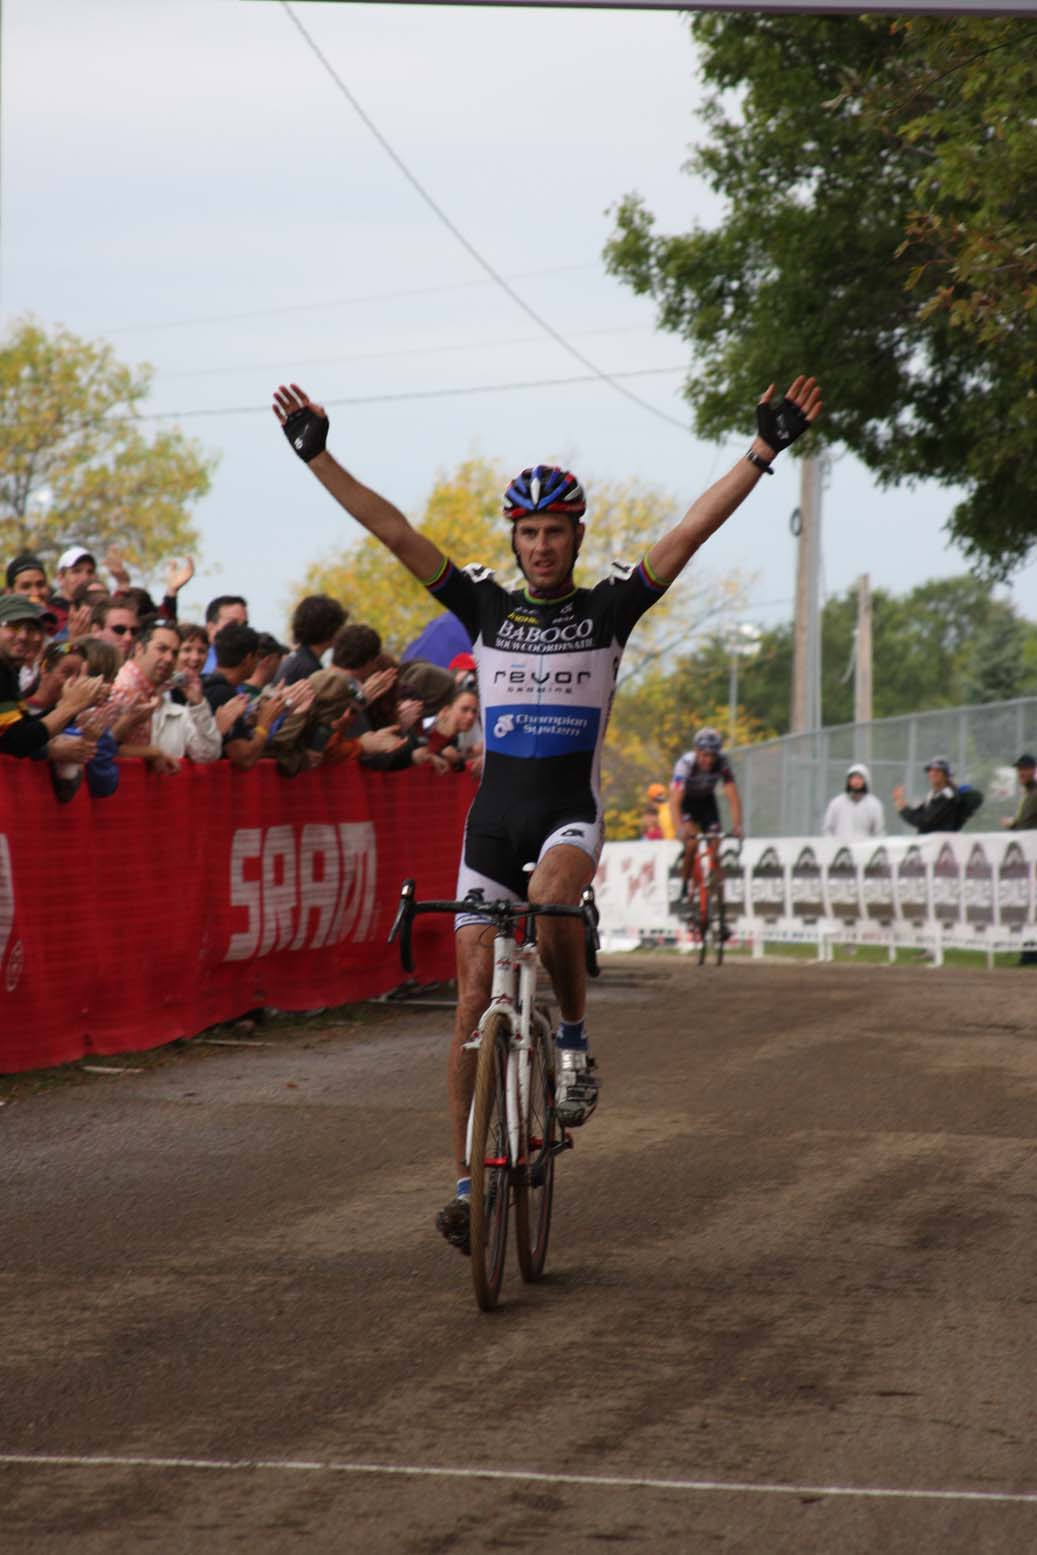 Erwin Vervecken took his only win of his American tour. by Amy Dykema